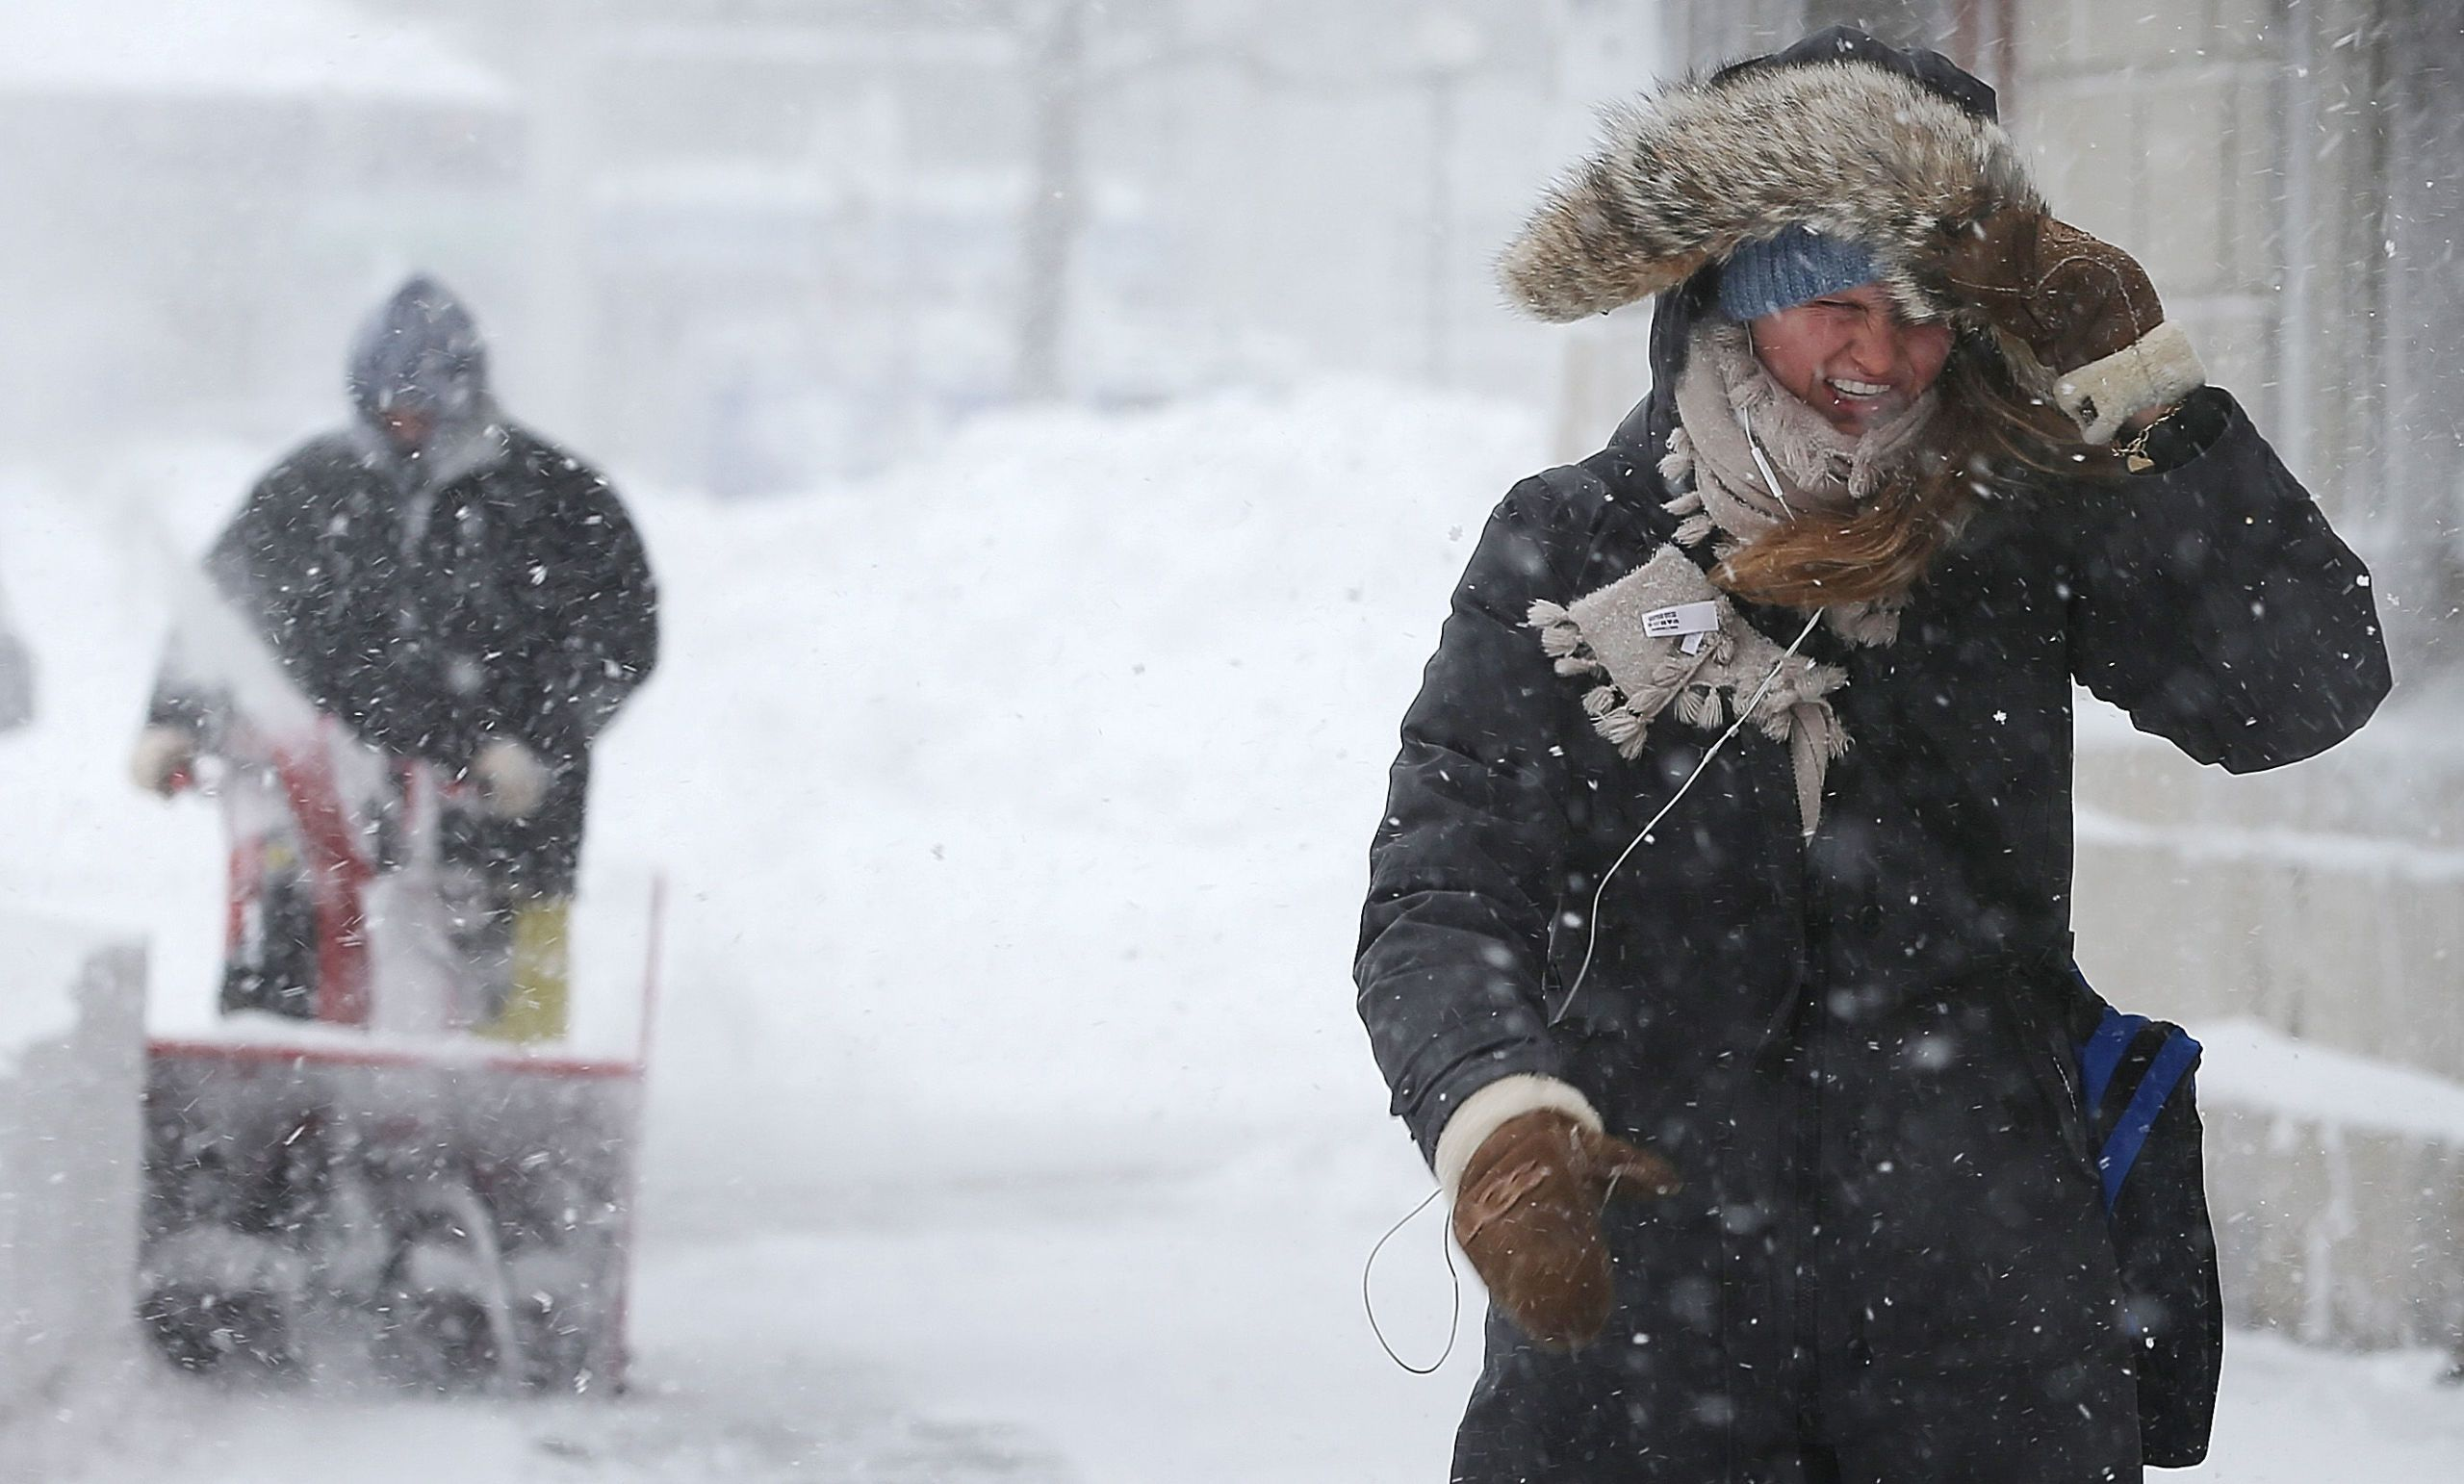 Brace Yourselves: An Insanely Cold Polar Vortex Is Coming Next Week